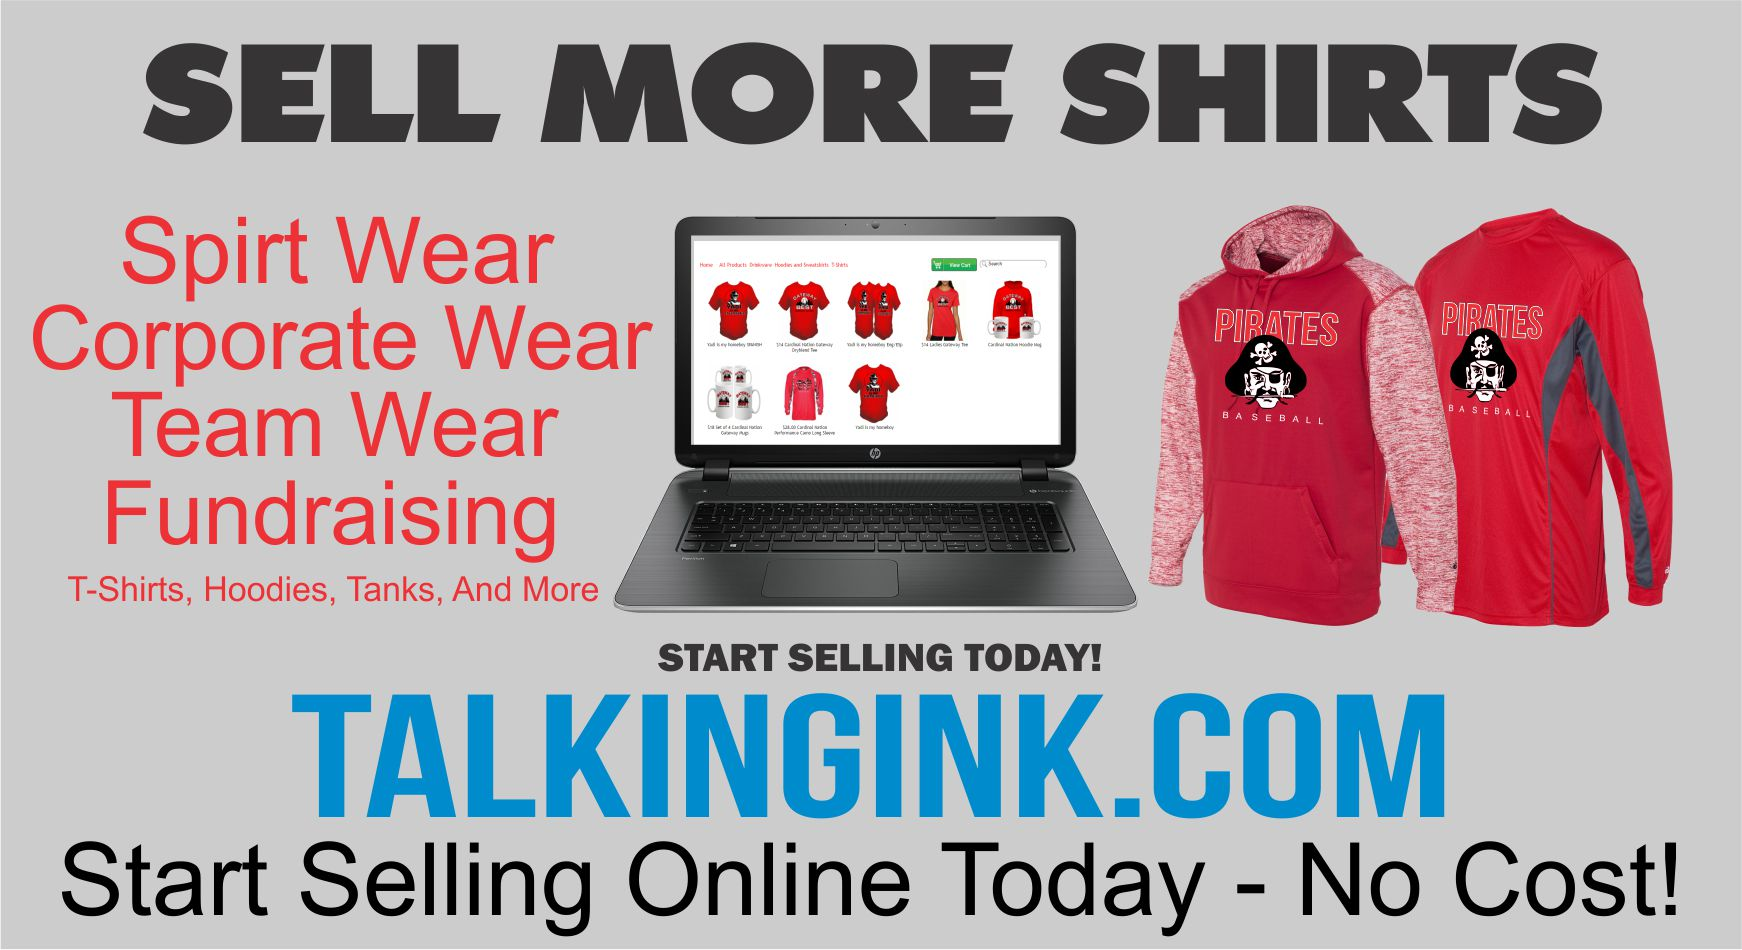 Sell more t-shirts online Talkingink